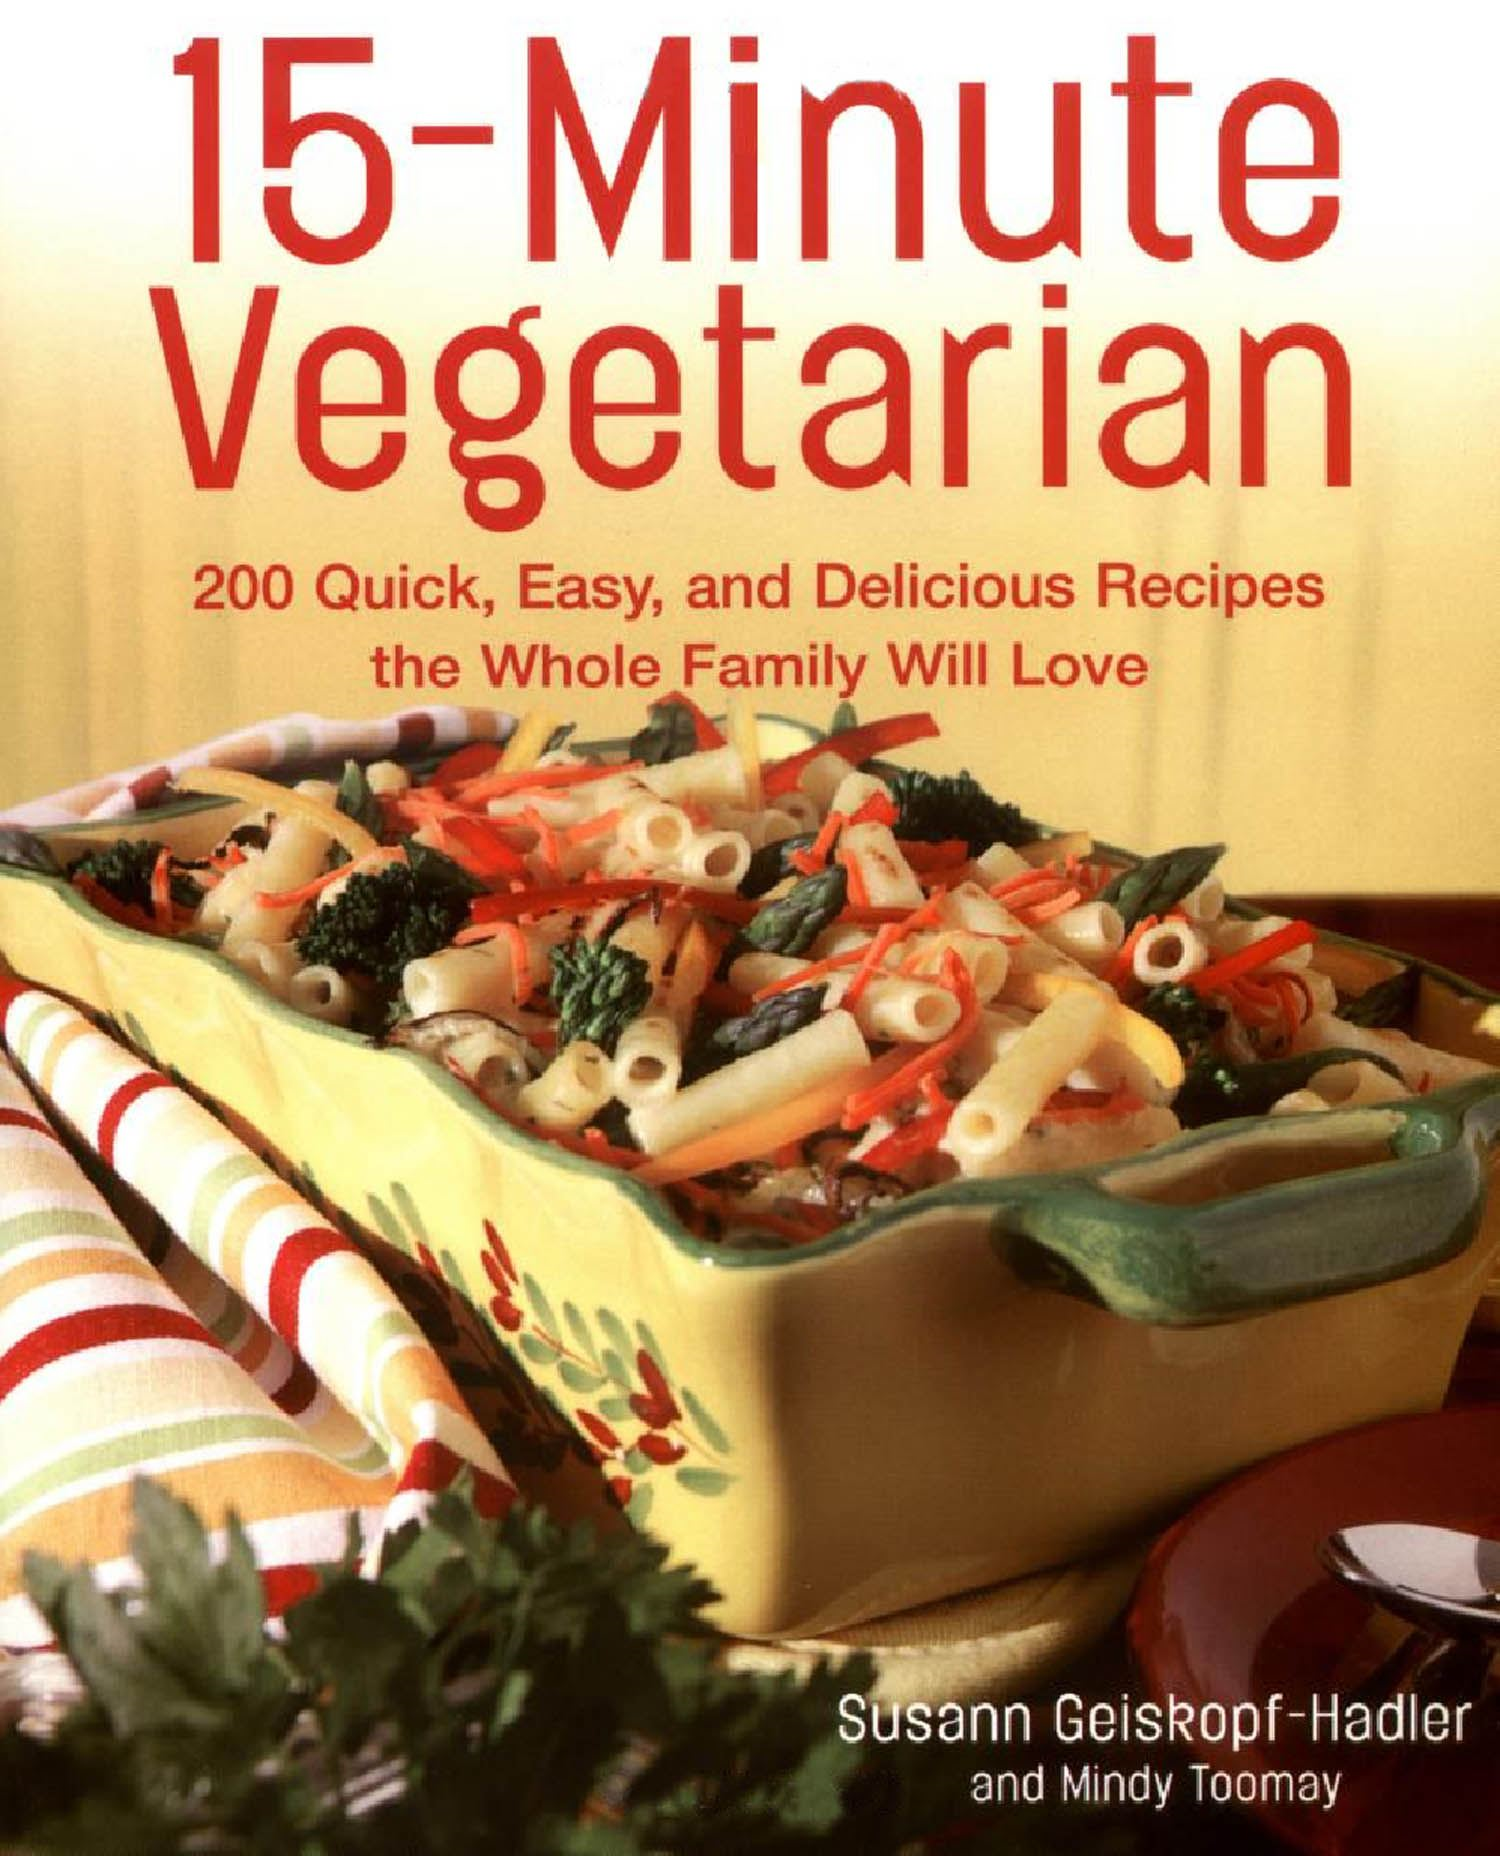 15-Minute Vegetarian Recipes: 200 Quick, Easy, and Delicious Recipes the Whole Family Will Love By: Susann Geiskopf-Hadler,Mindy Toomay